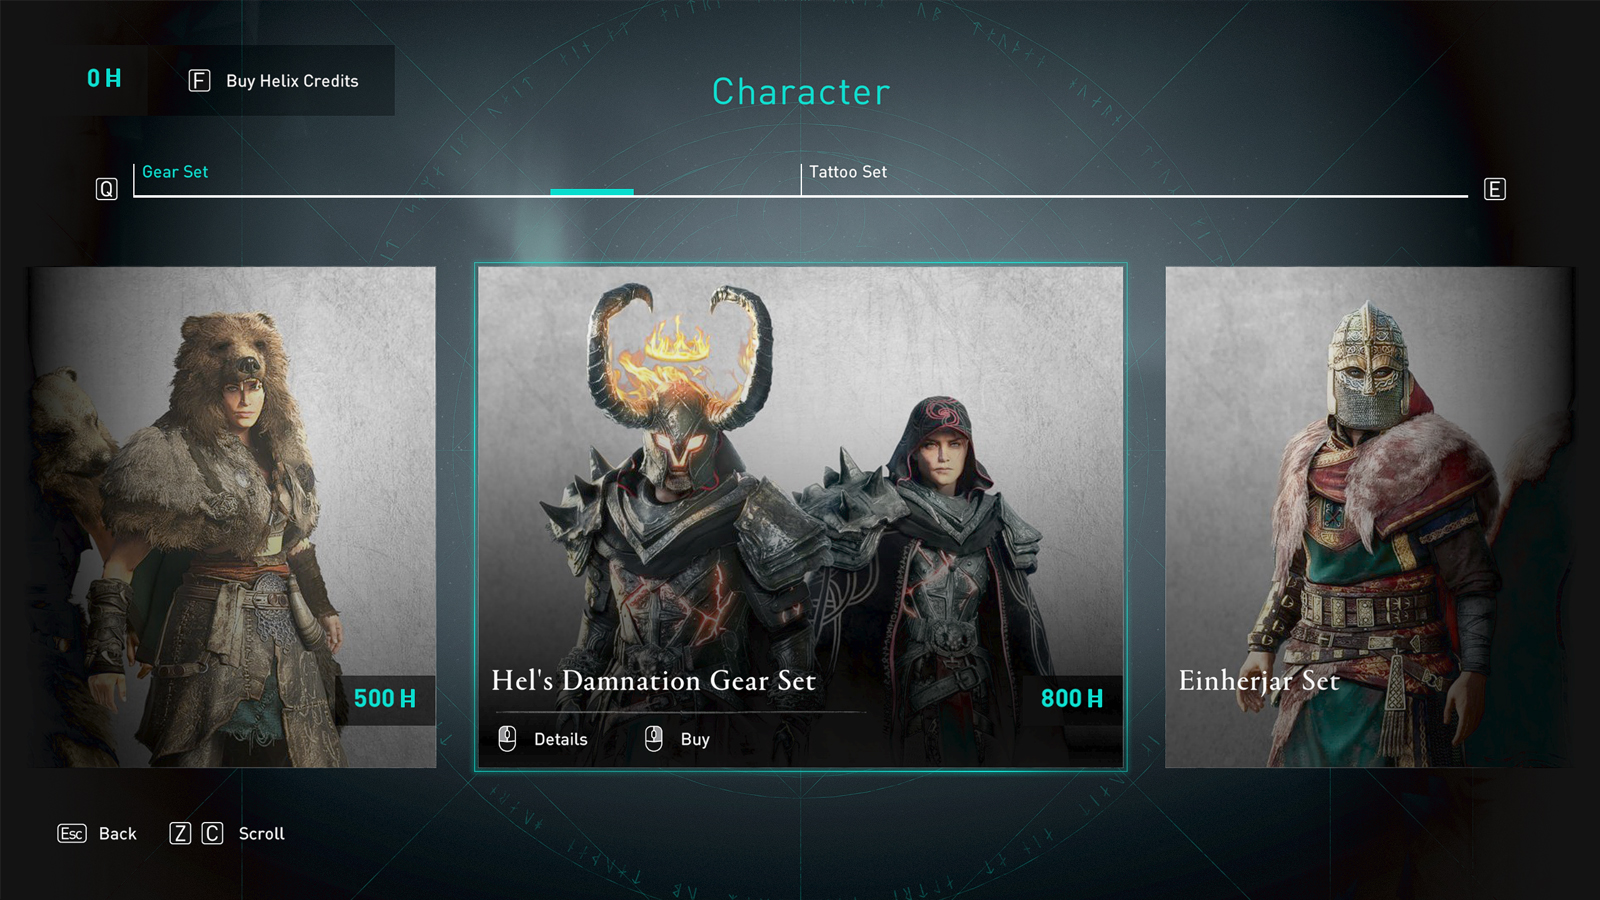 Hel's Damnation Assassin's Creed Valhalla set in store